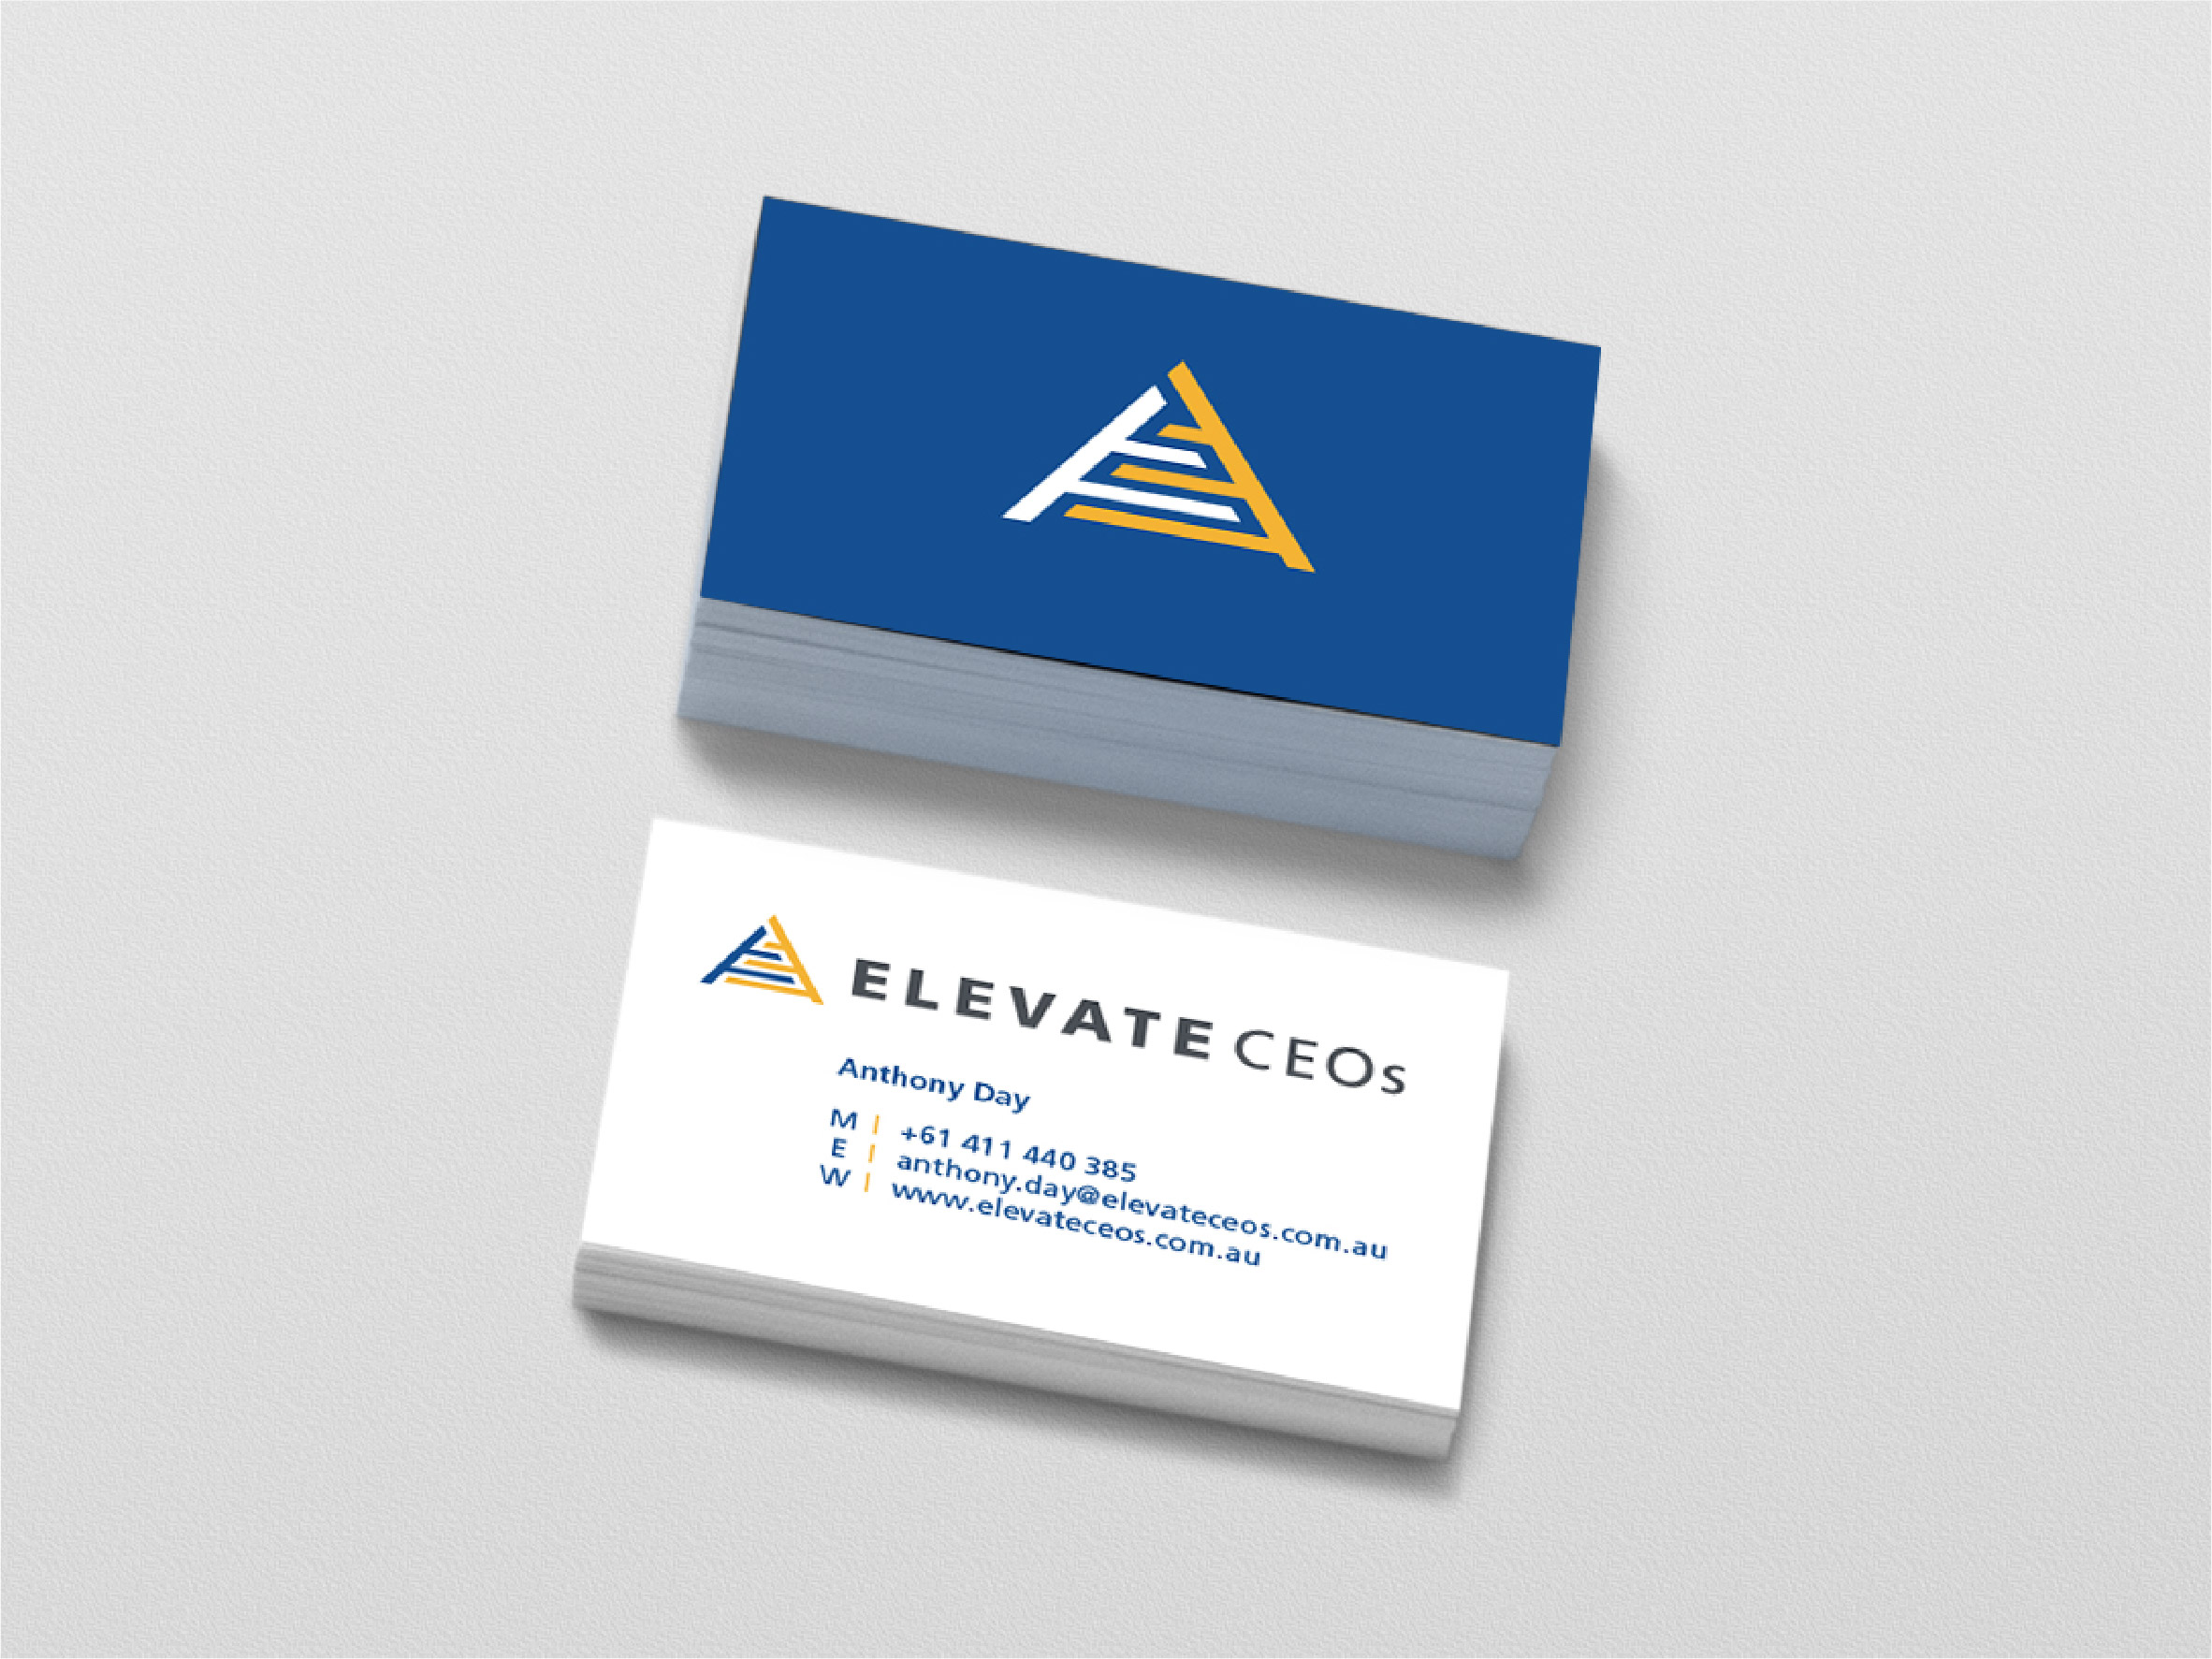 eceos_business-cards